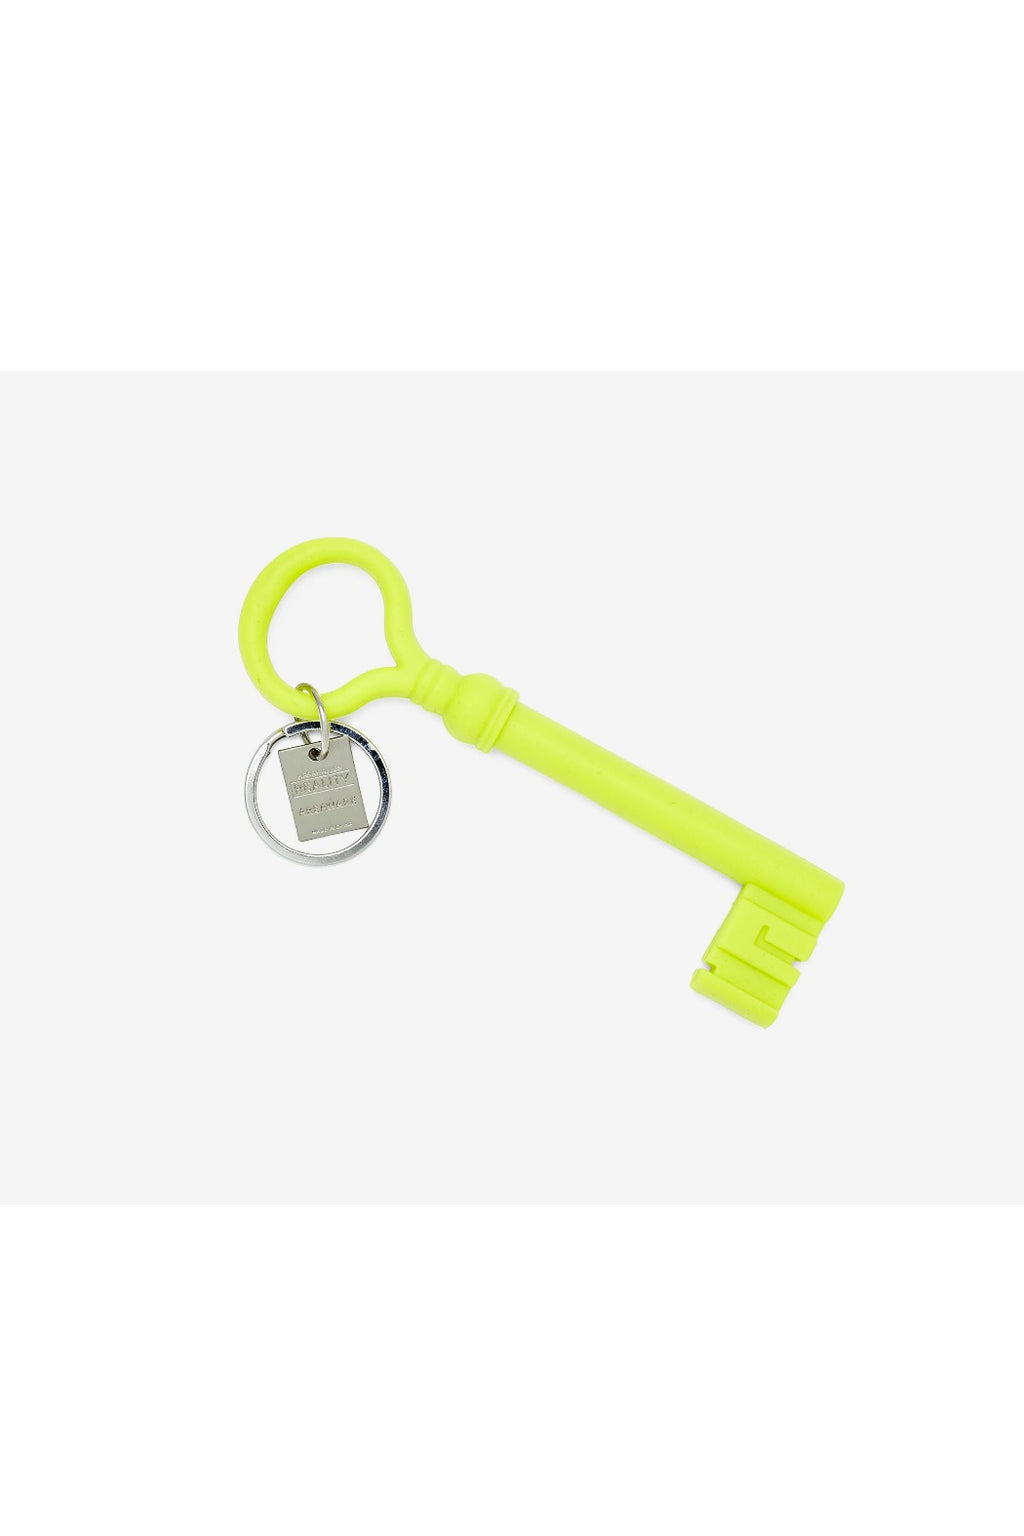 Areaware Reality Keychain by Harry Allen - Chartreuse